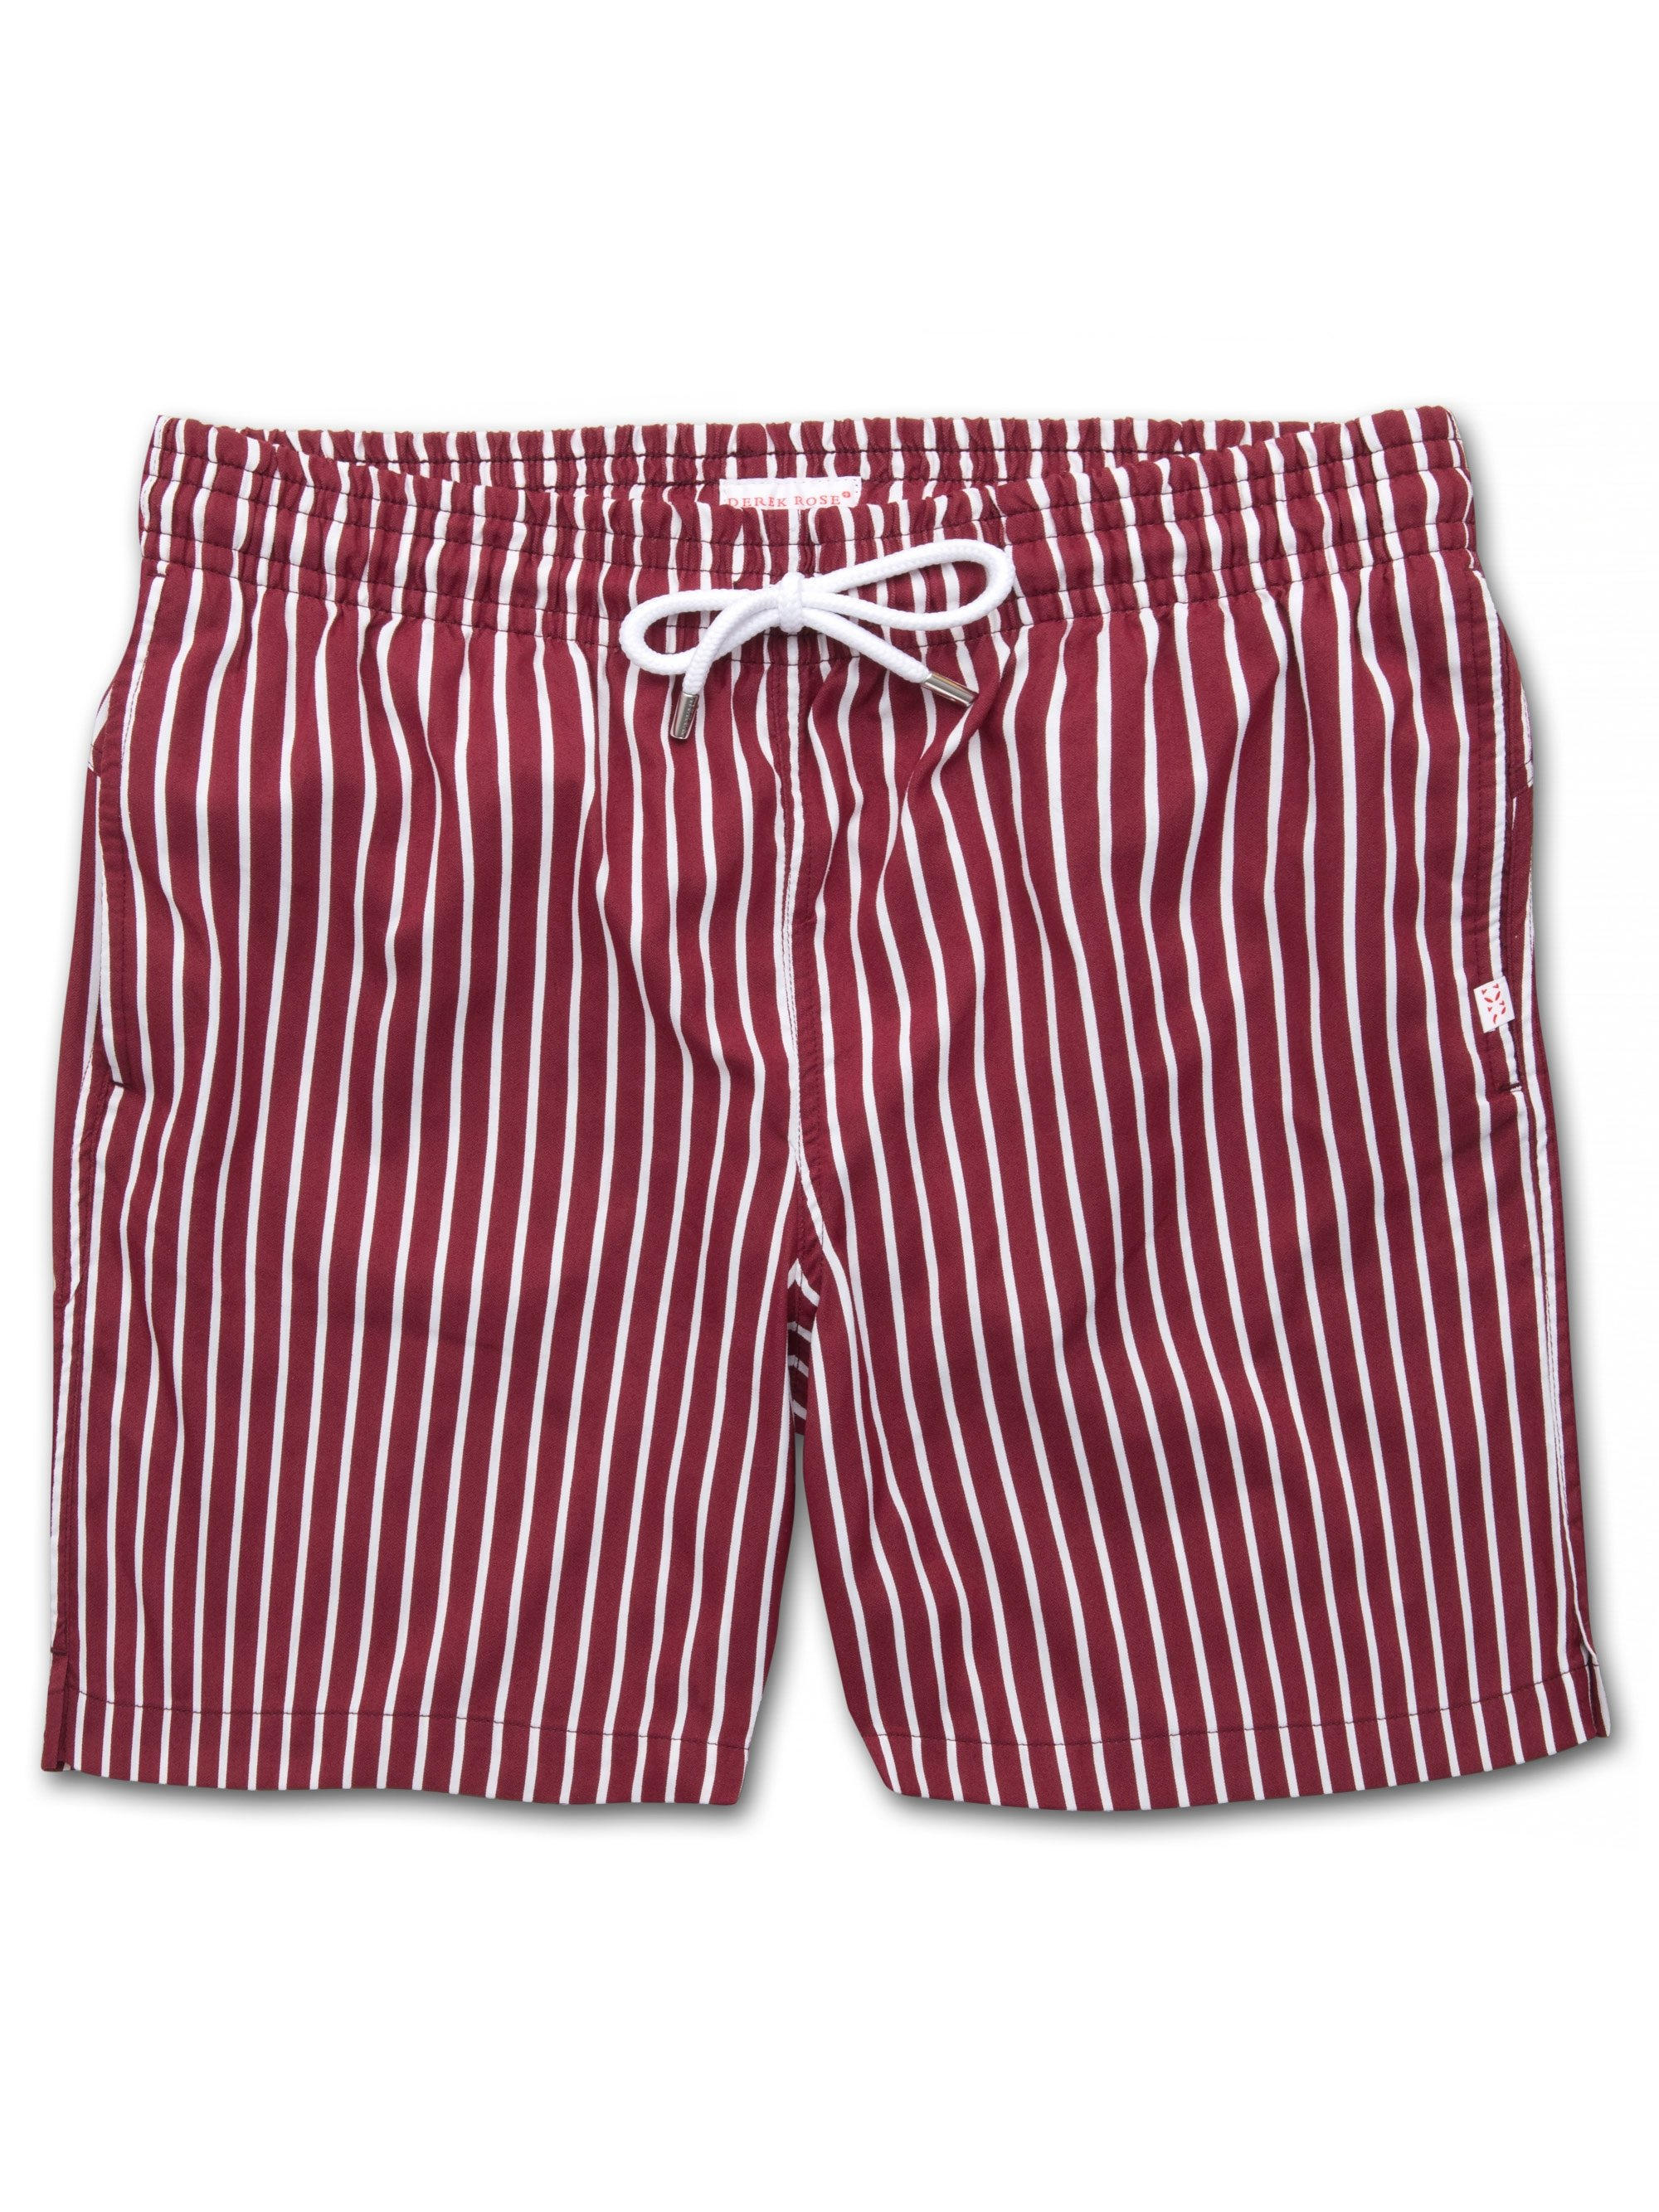 Men's Classic Fit Swim Shorts Bondi Burgundy